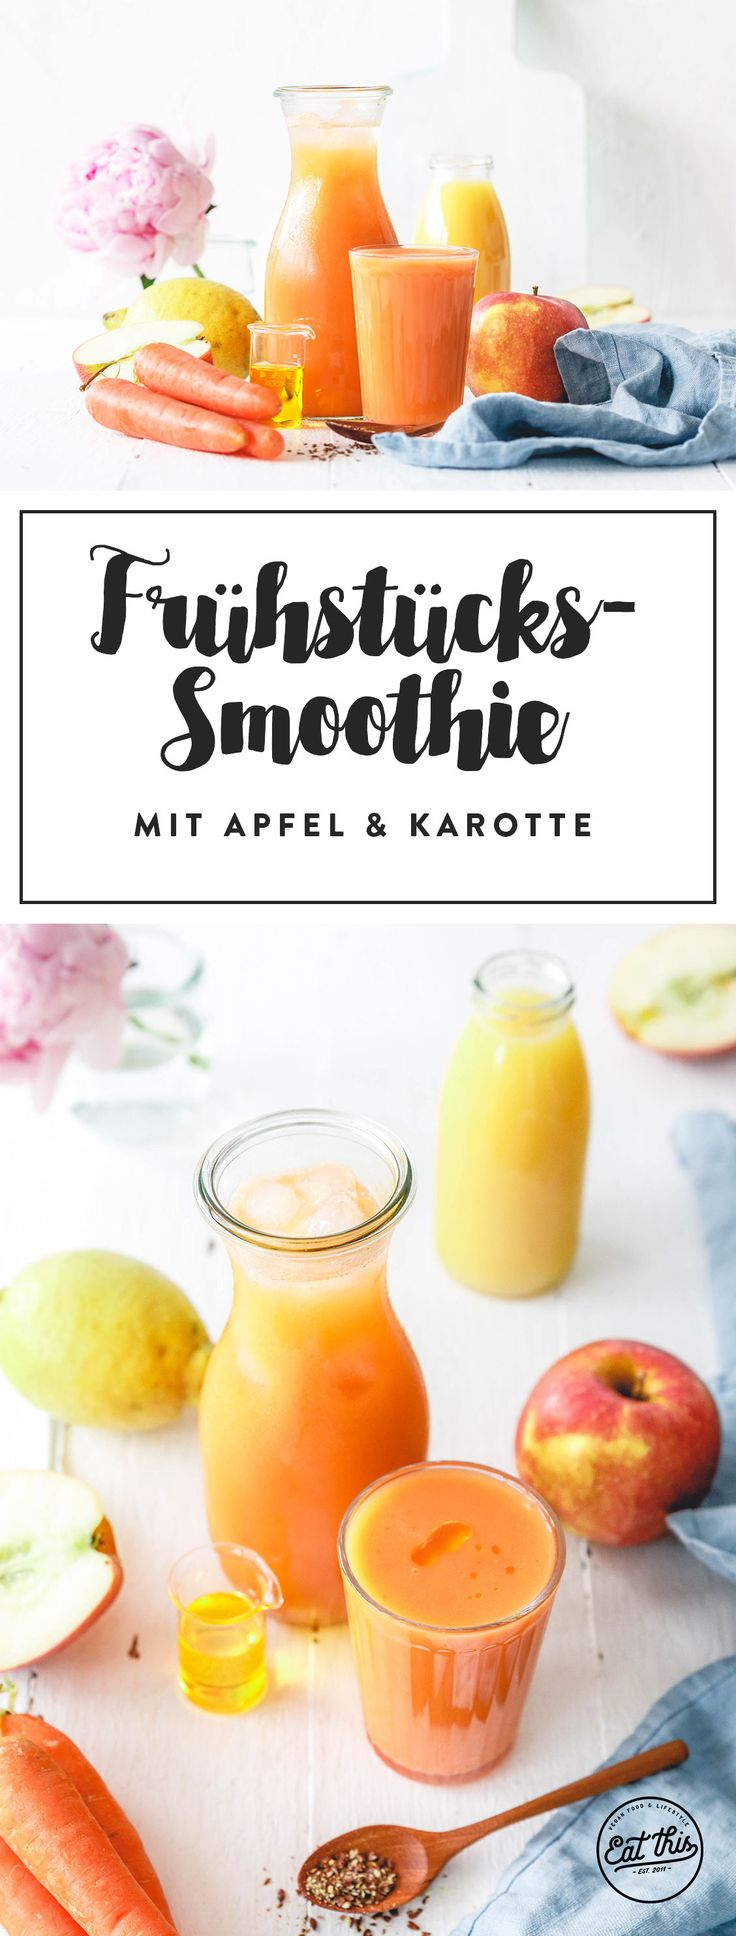 Delicious breakfast smoothie with apple & carrot – 5 a day